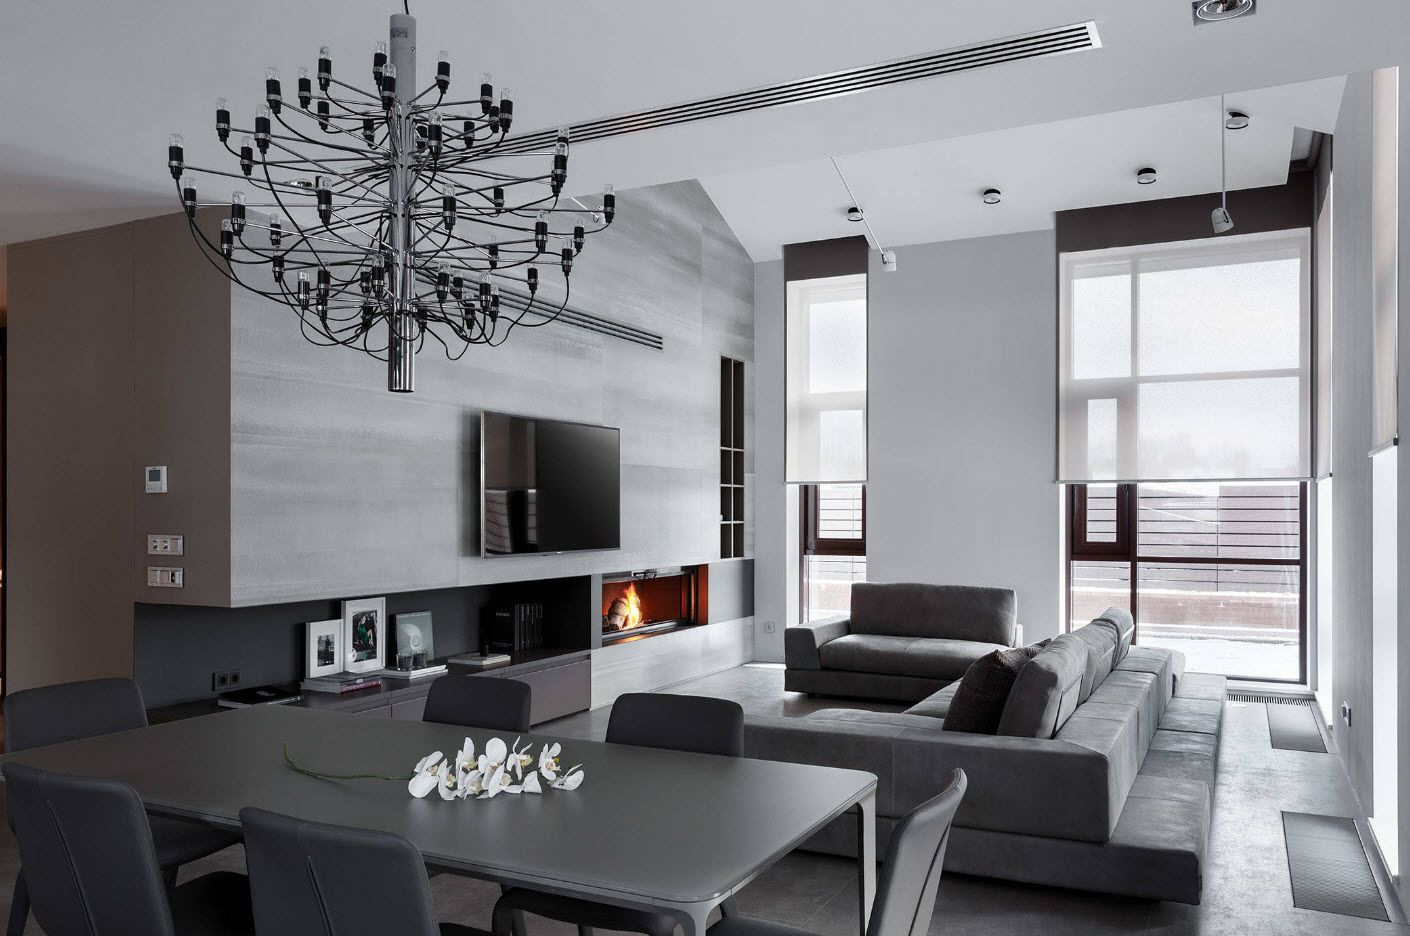 White Living Room: Different Style Interiors with Photos. Unusual gray color play in Classic interior